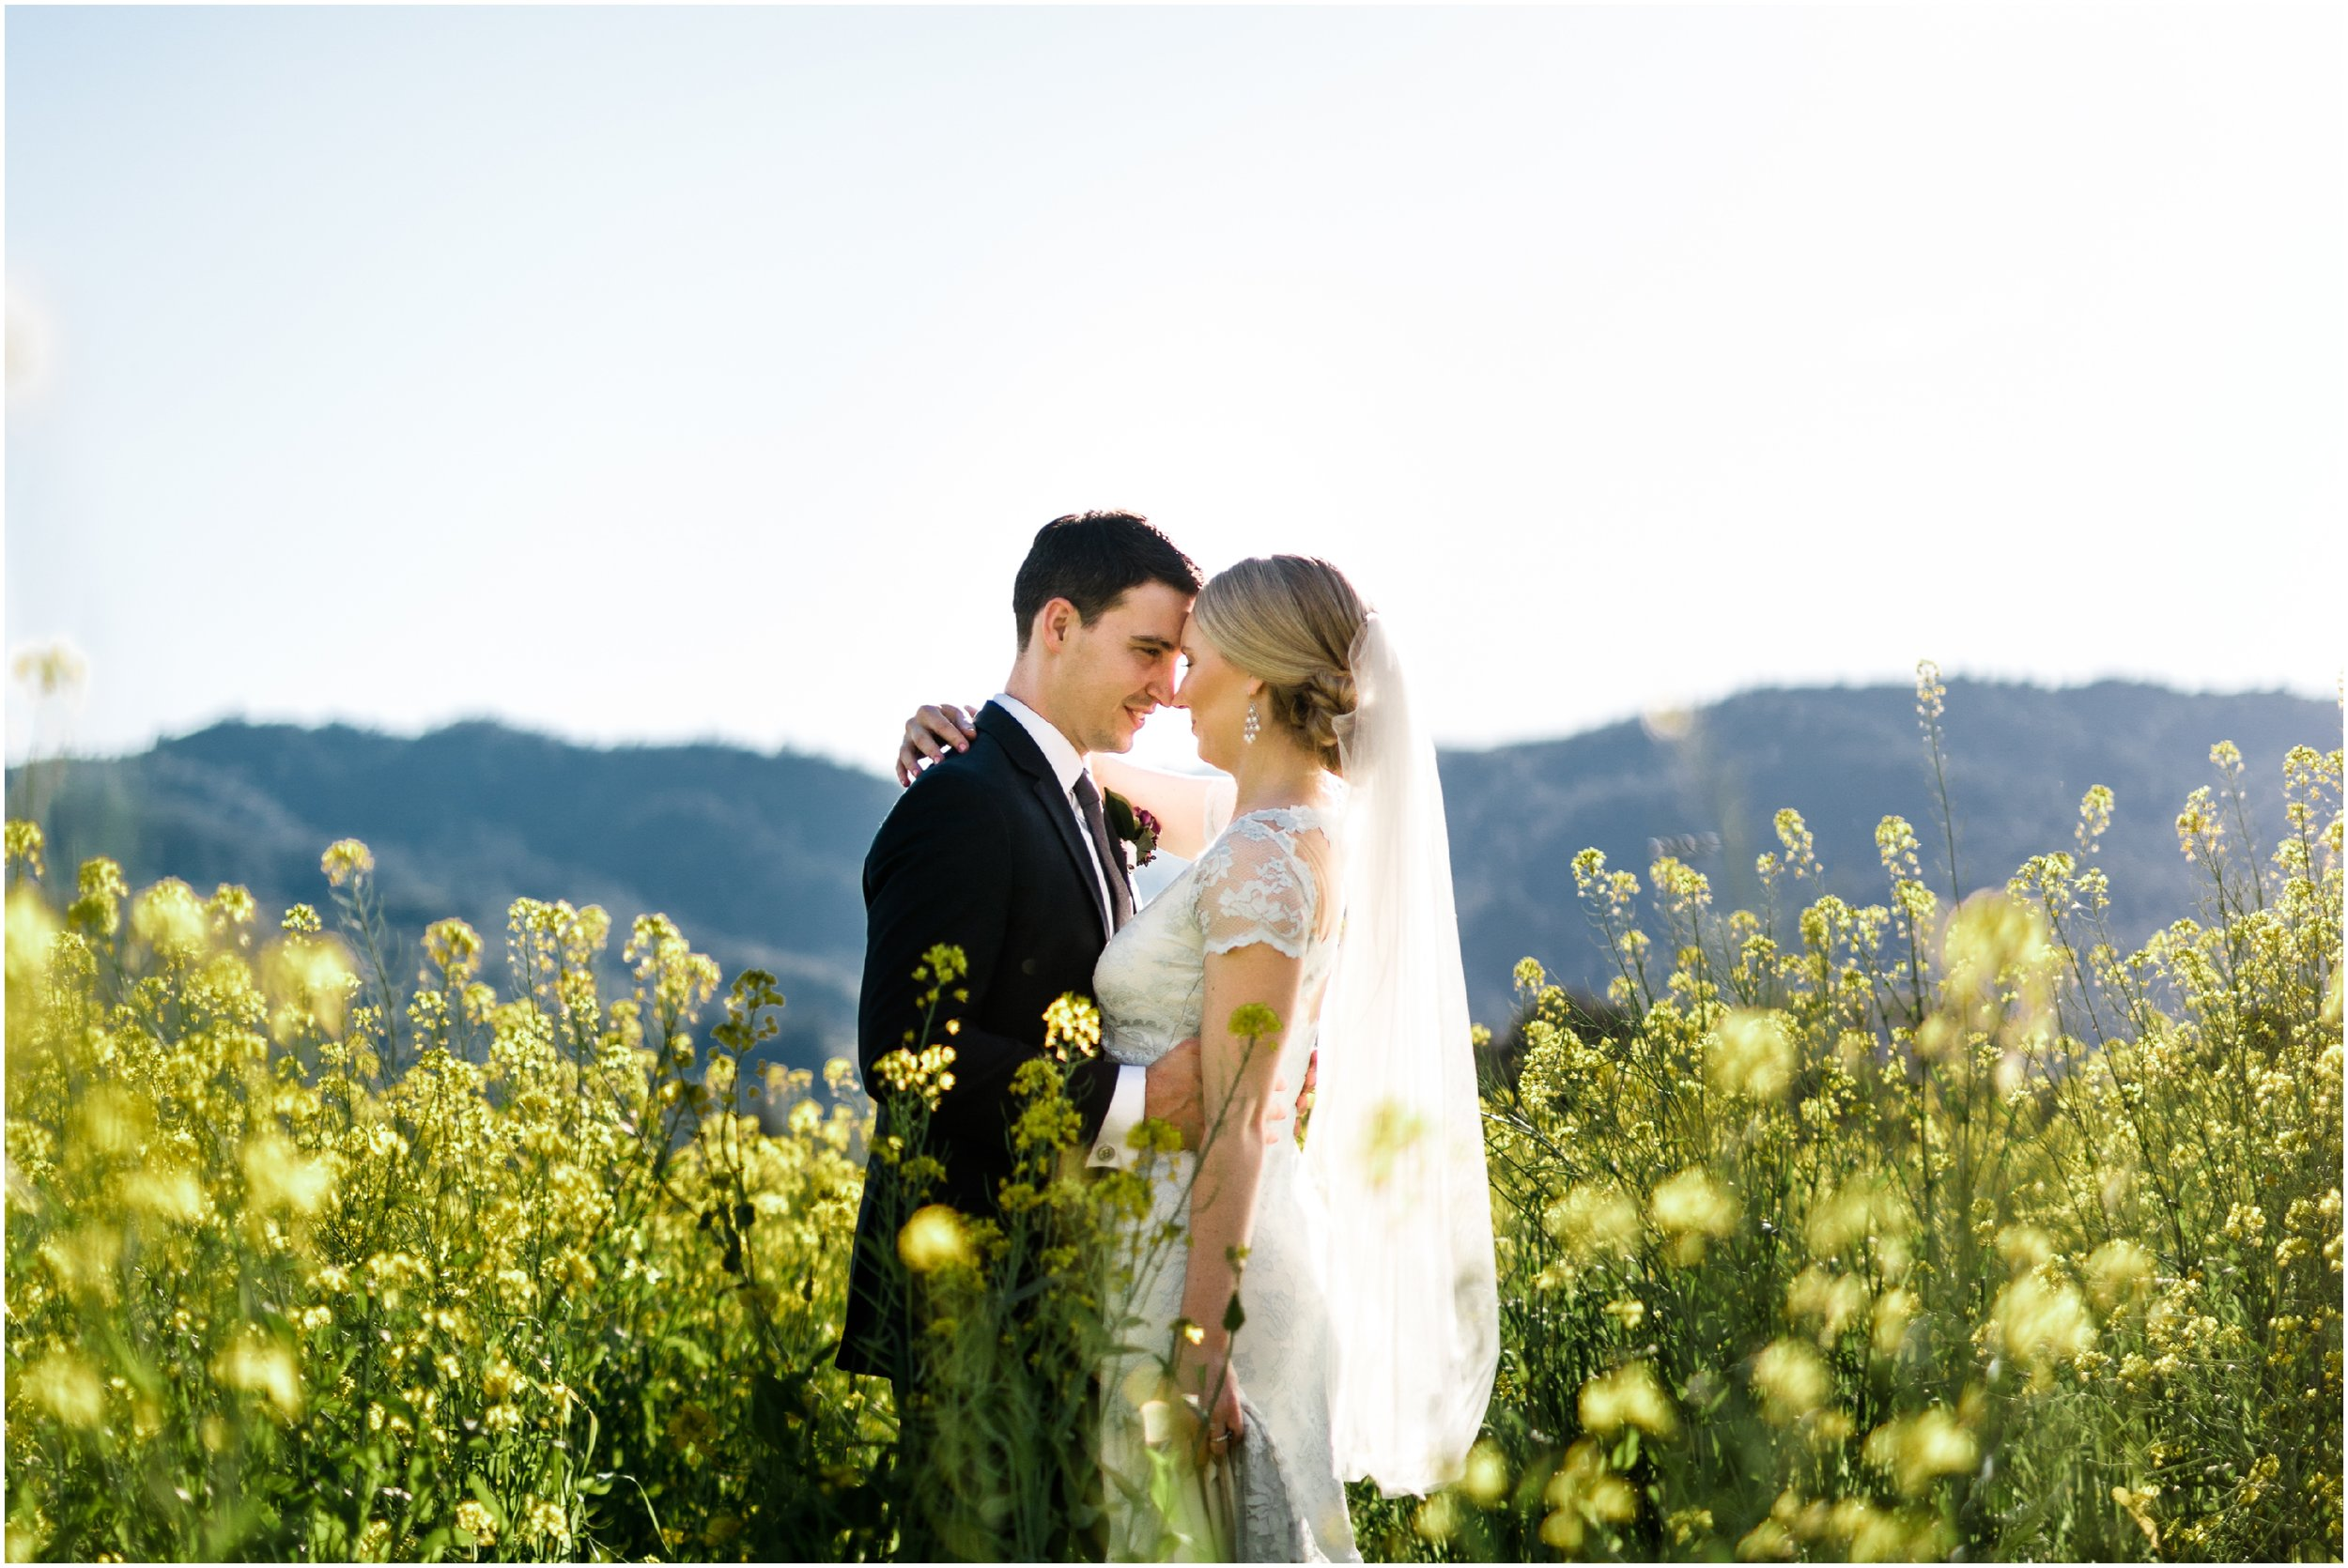 bride and groom posing in a field of flowers in Napa Valley